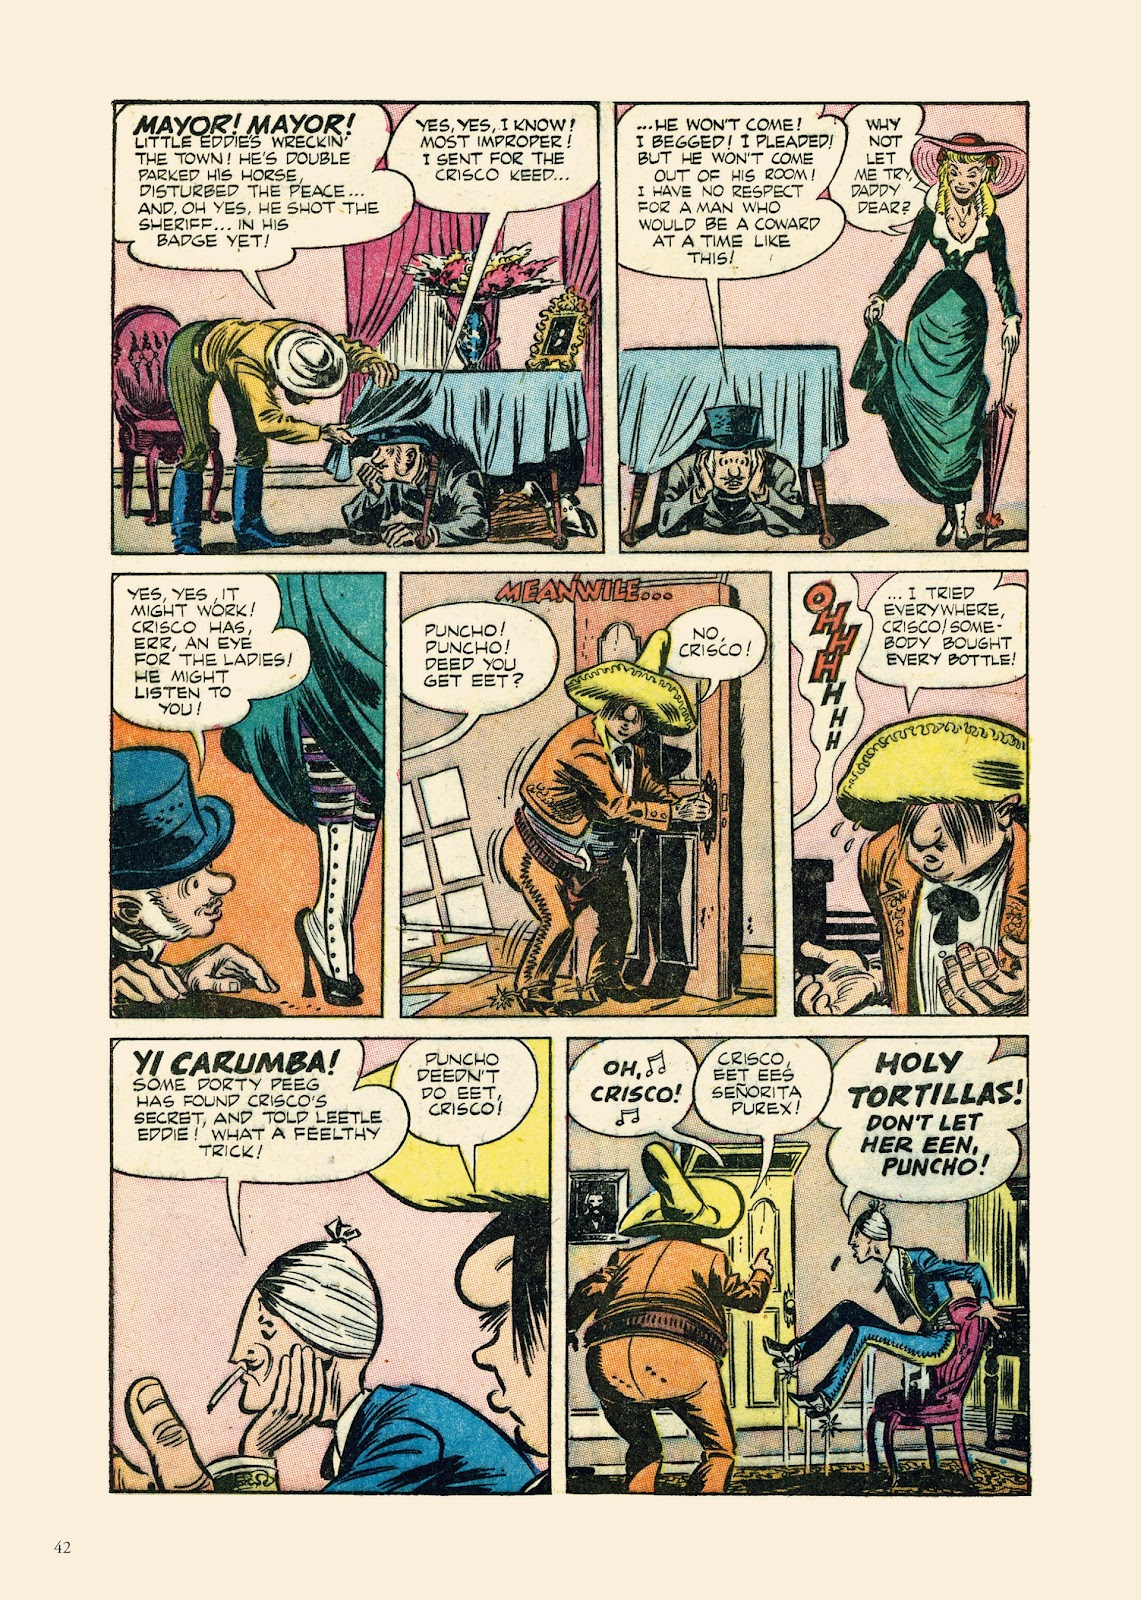 Read online Sincerest Form of Parody: The Best 1950s MAD-Inspired Satirical Comics comic -  Issue # TPB (Part 1) - 43